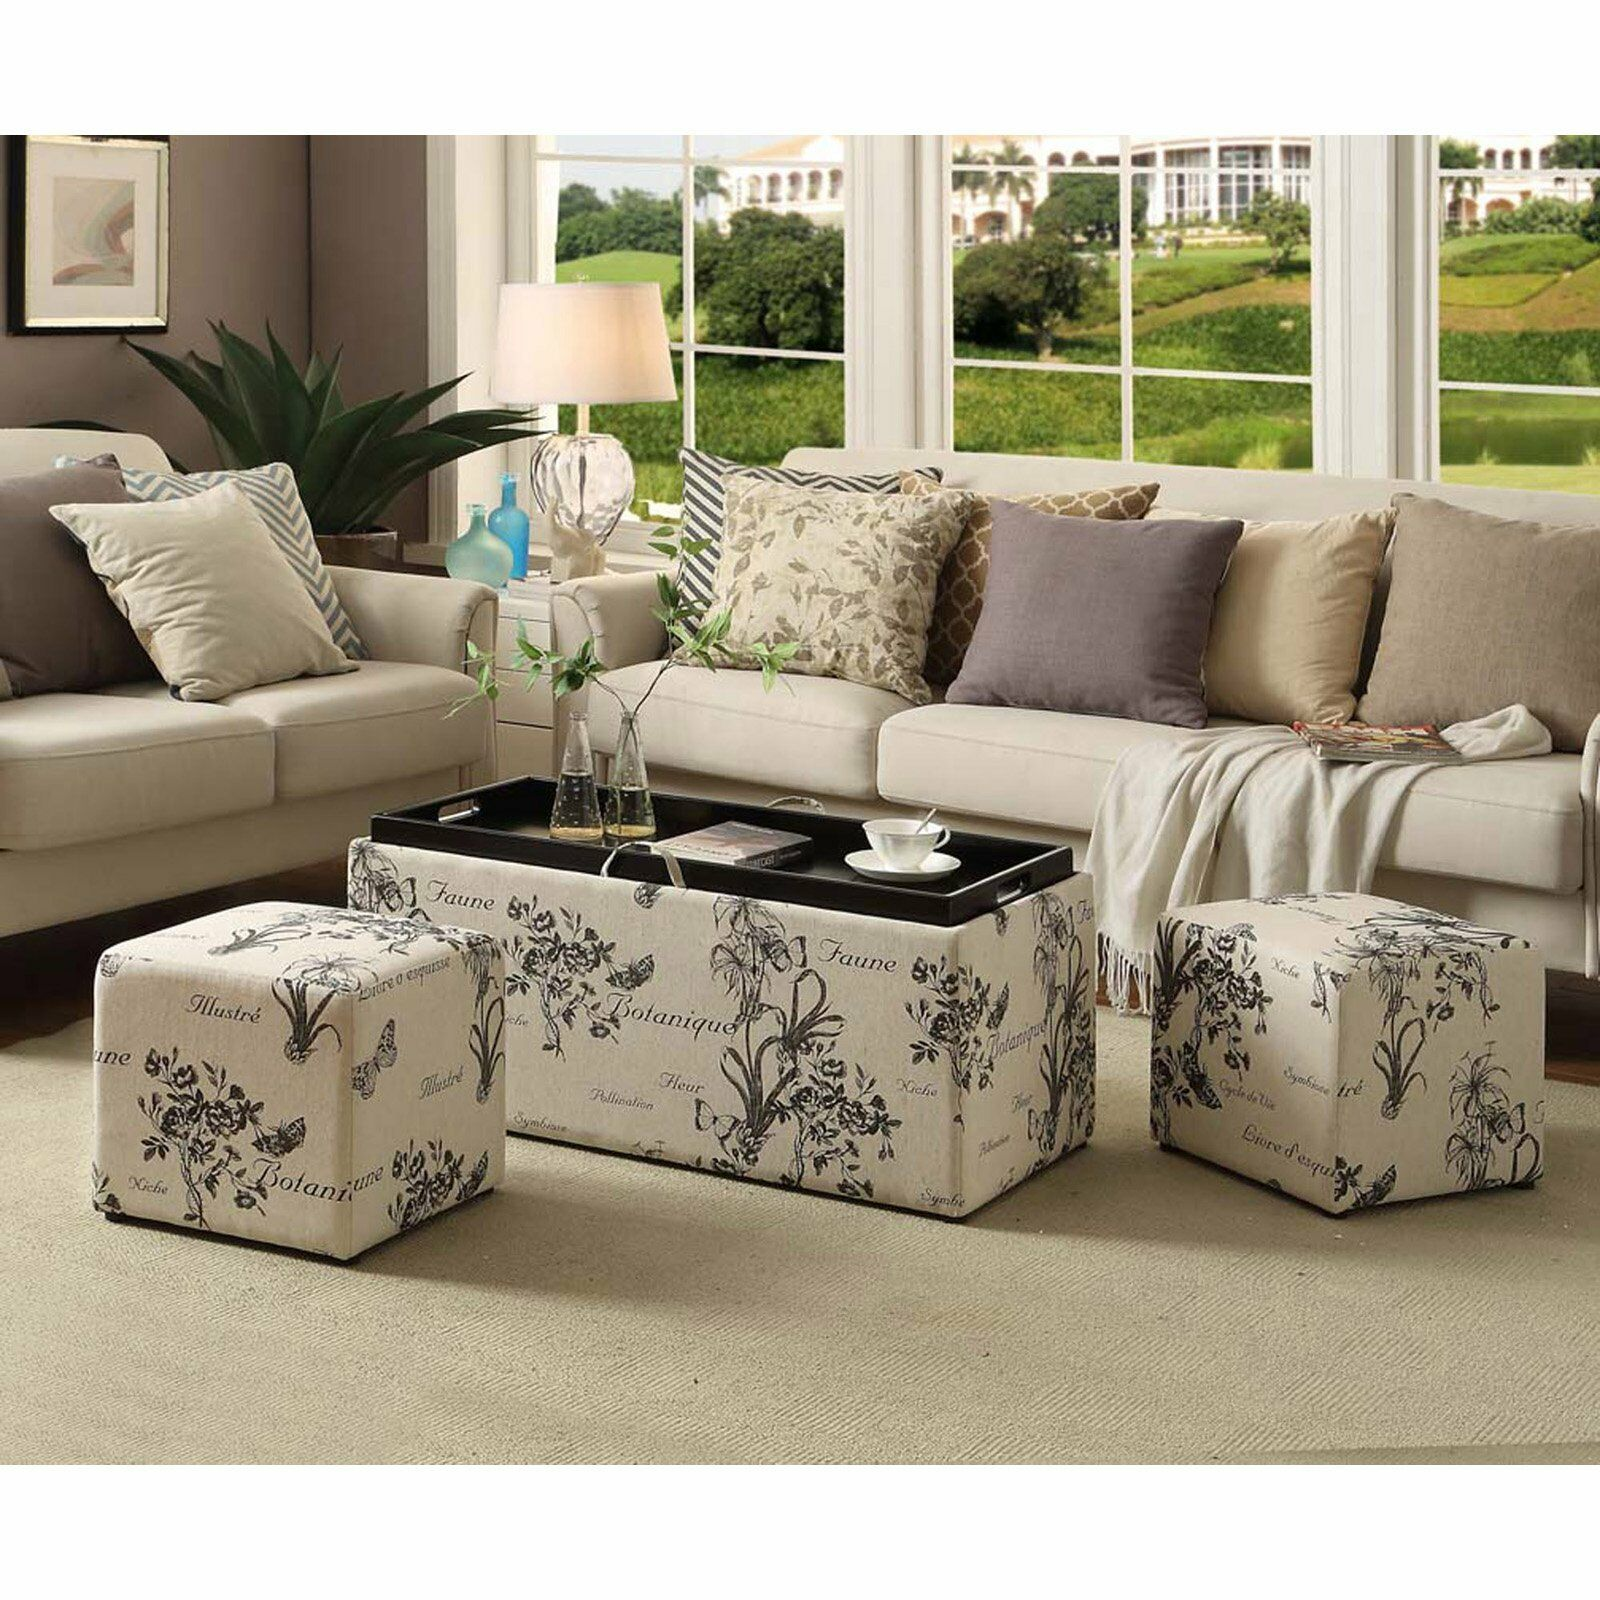 3pc Beige Floral Script Cocktail Ottoman Coffee Table w/ Tra